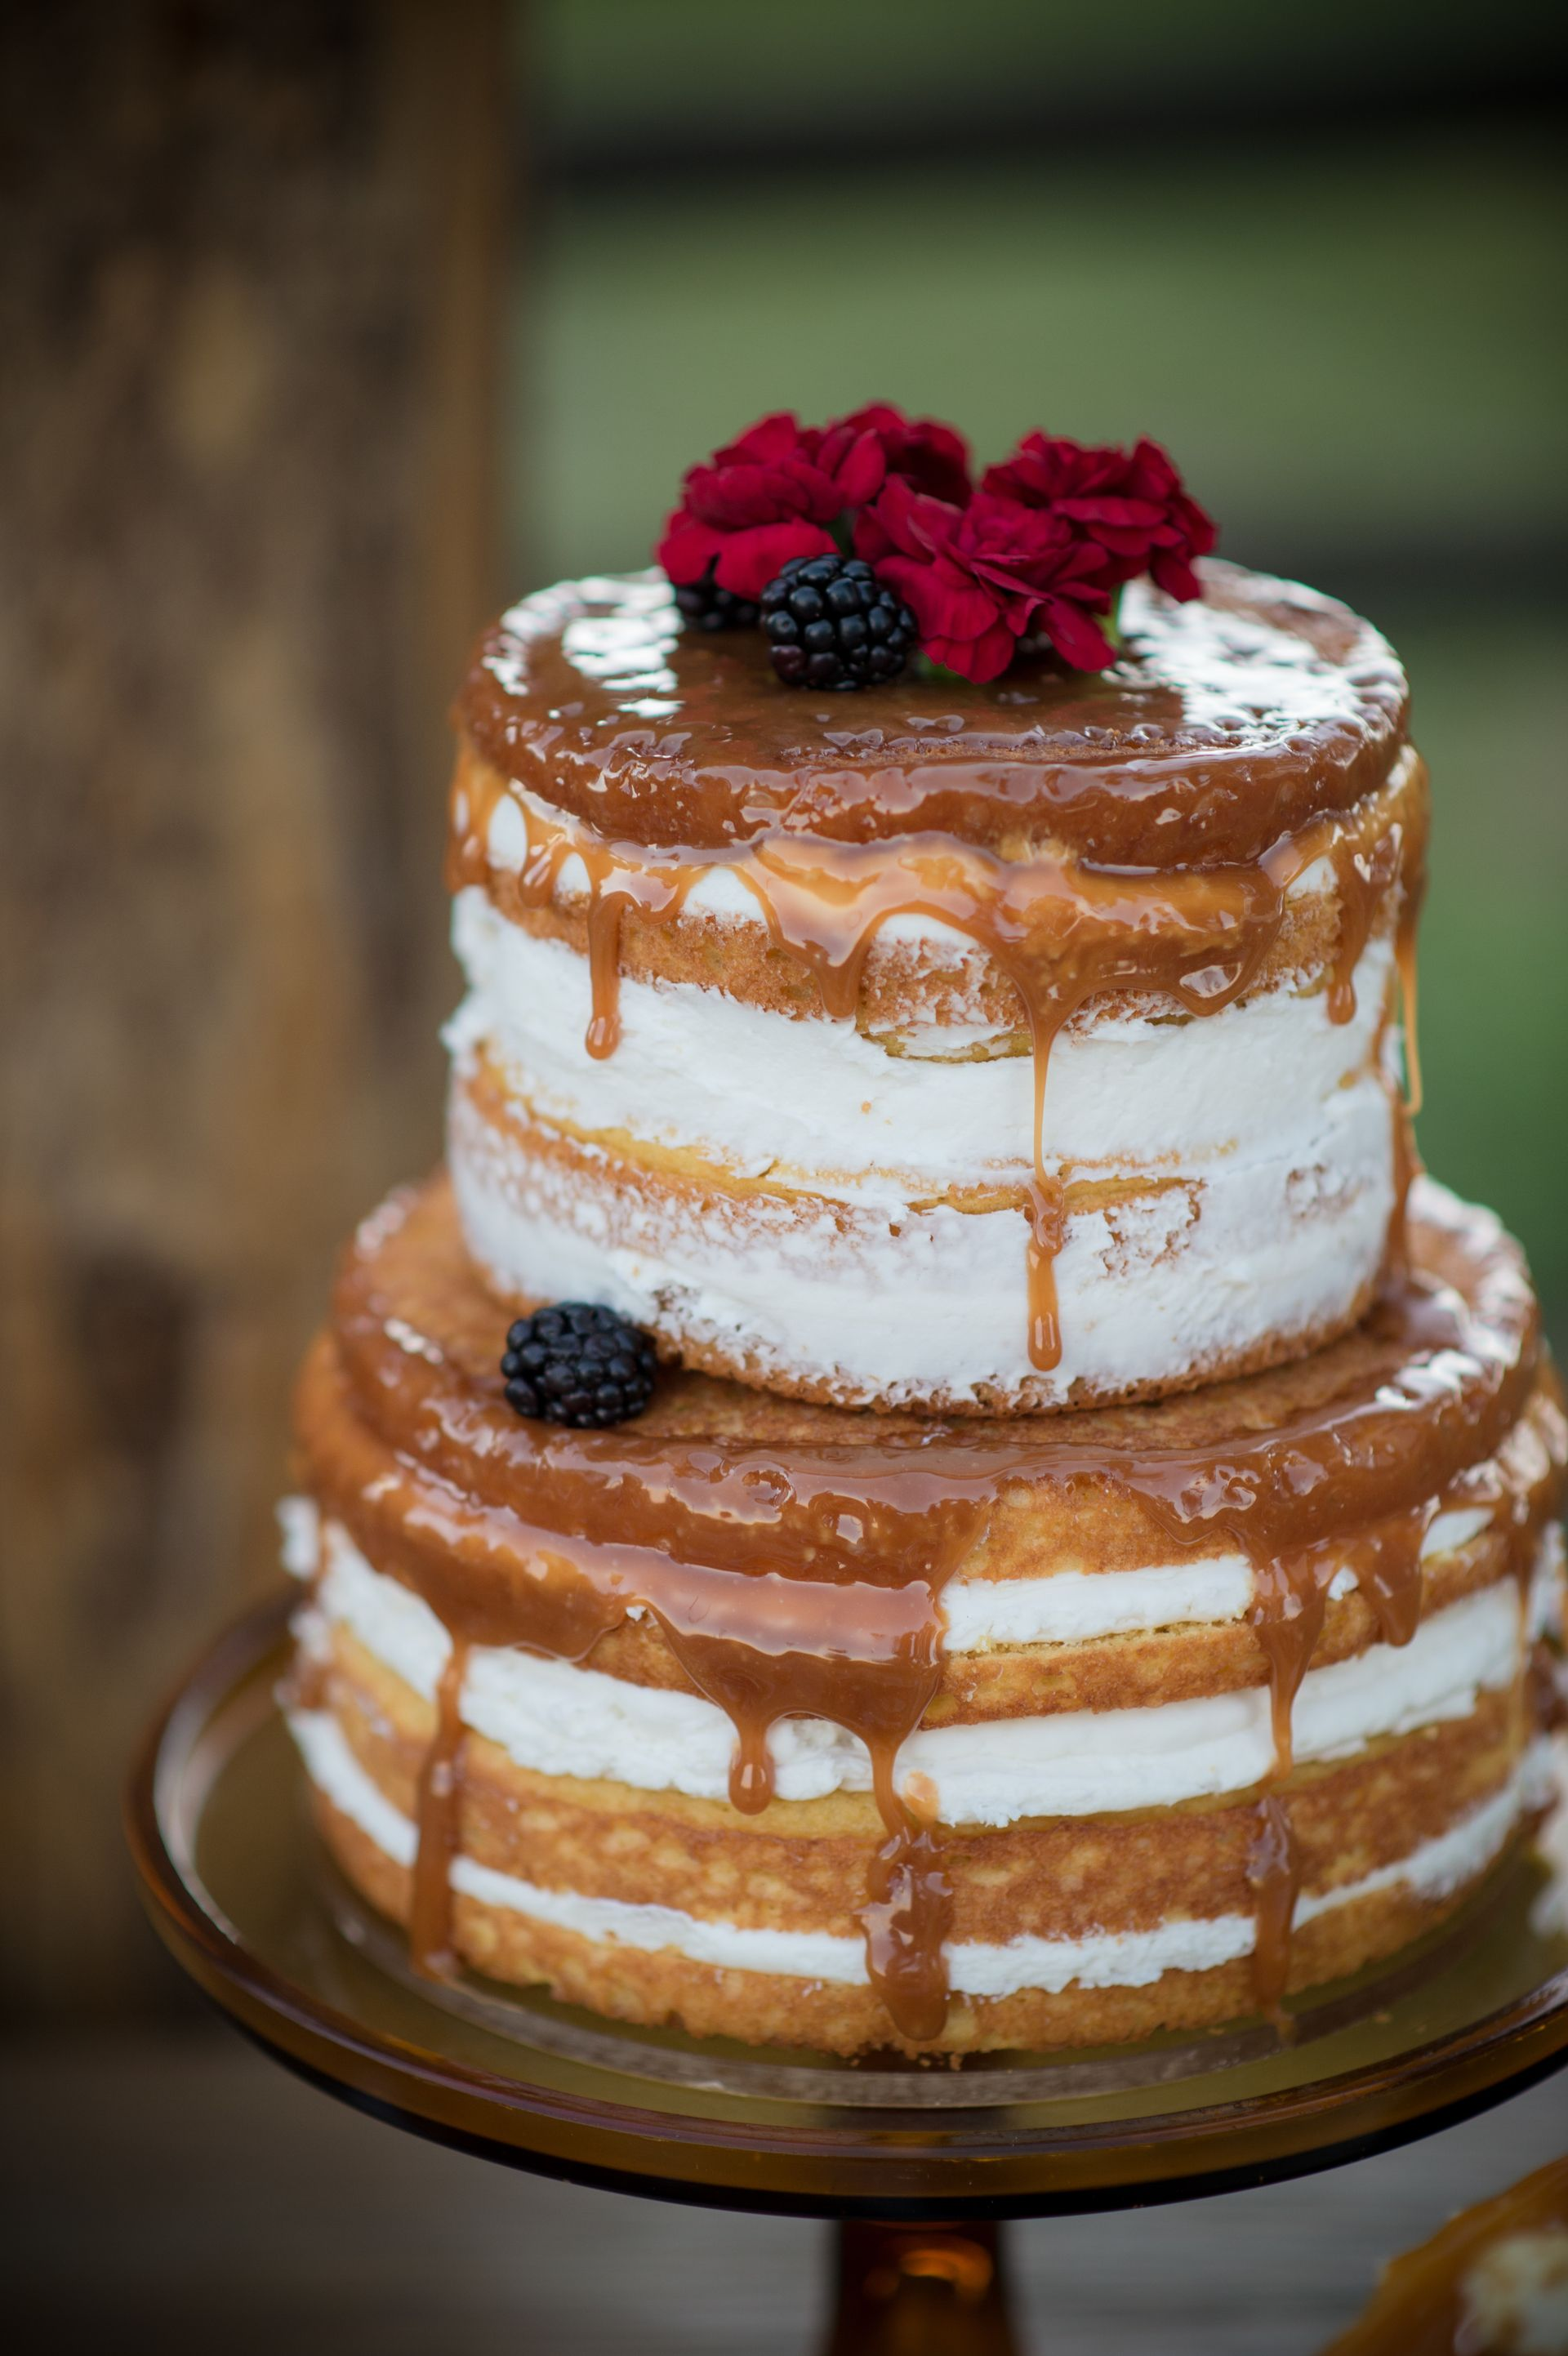 Naked cake, blackberries, red flowers, caramel drizzle, wedding cake ideas // Spika Photography